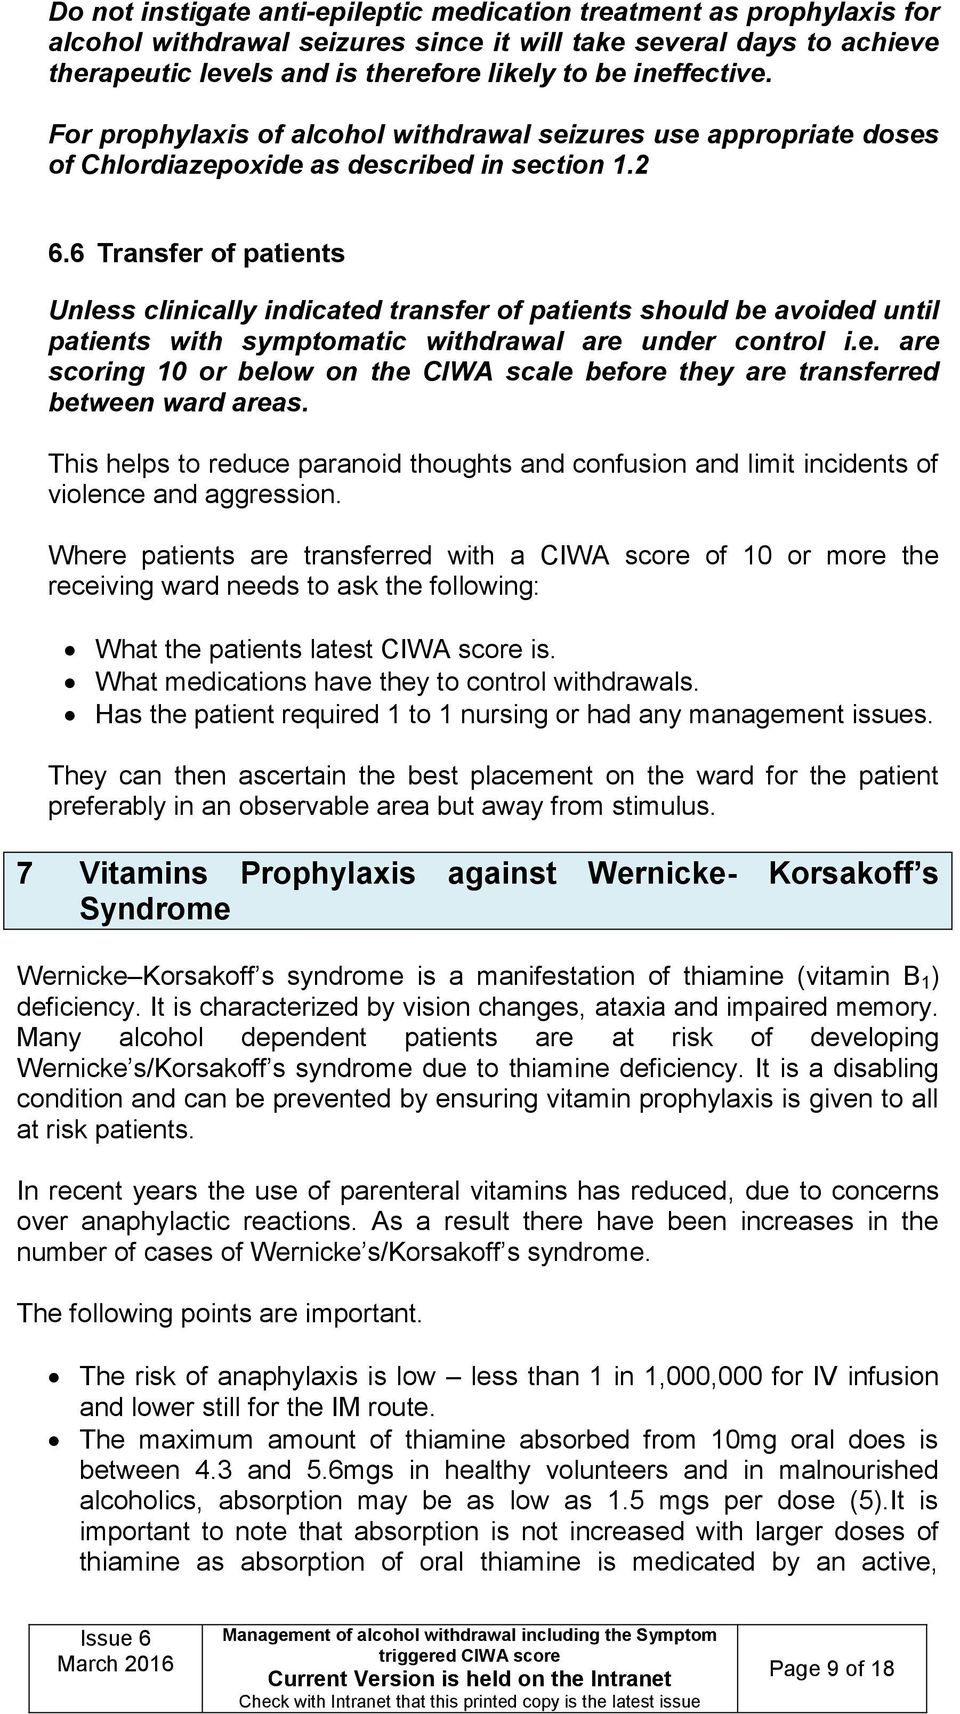 6 Transfer of patients Unless clinically indicated transfer of patients should be avoided until patients with symptomatic withdrawal are under control i.e. are scoring 10 or below on the CIWA scale before they are transferred between ward areas.